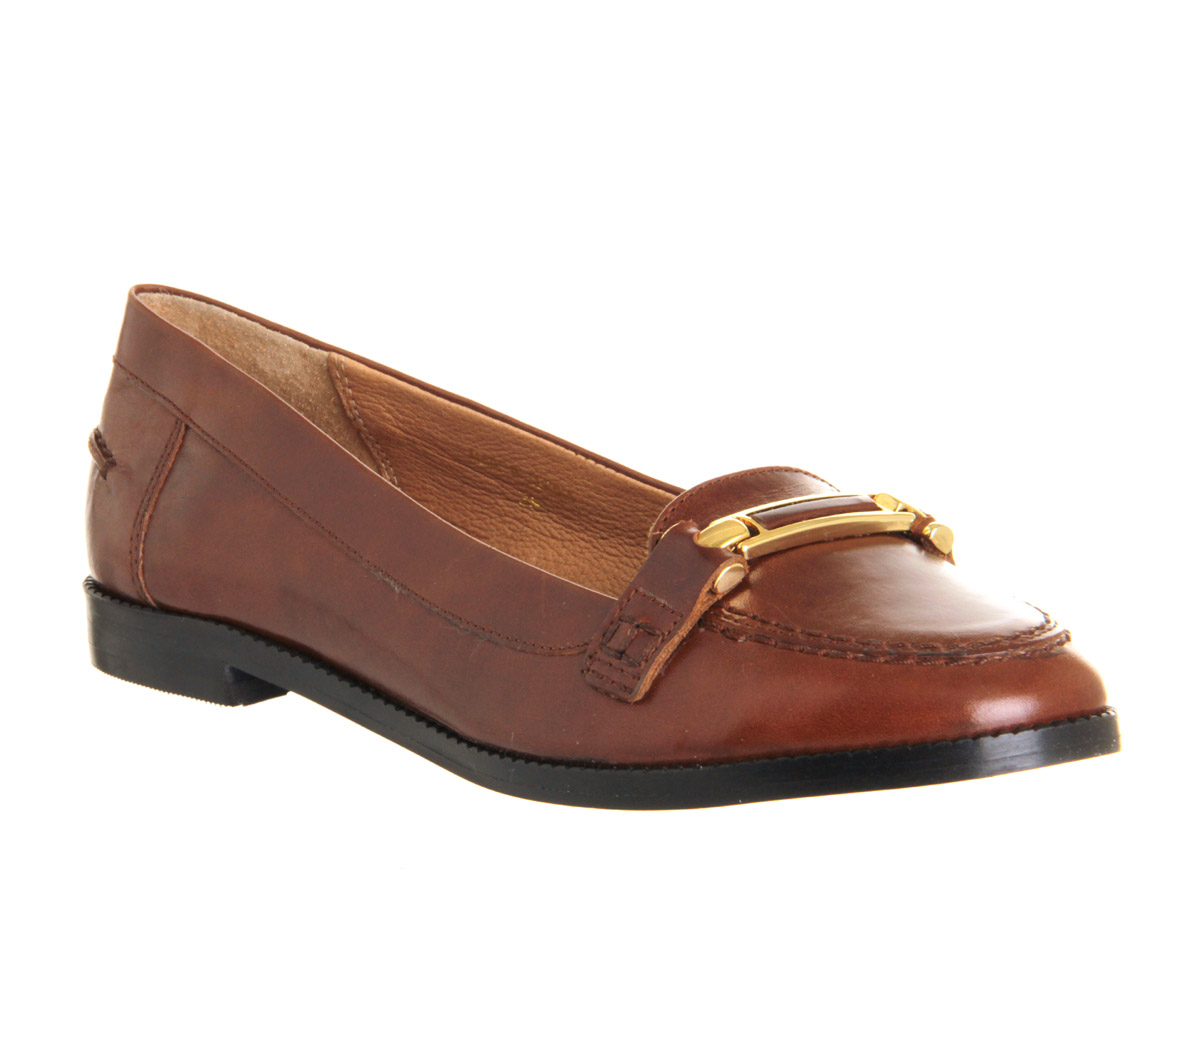 Find Loafers from the Womens department at Debenhams. Shop a wide range of Shoes products and more at our online shop today. Menu Tan libra loafers Save. Was £ Then £ Now £ > Good for the Sole Navy 'Gondola' wide fit loafers Save. Was £